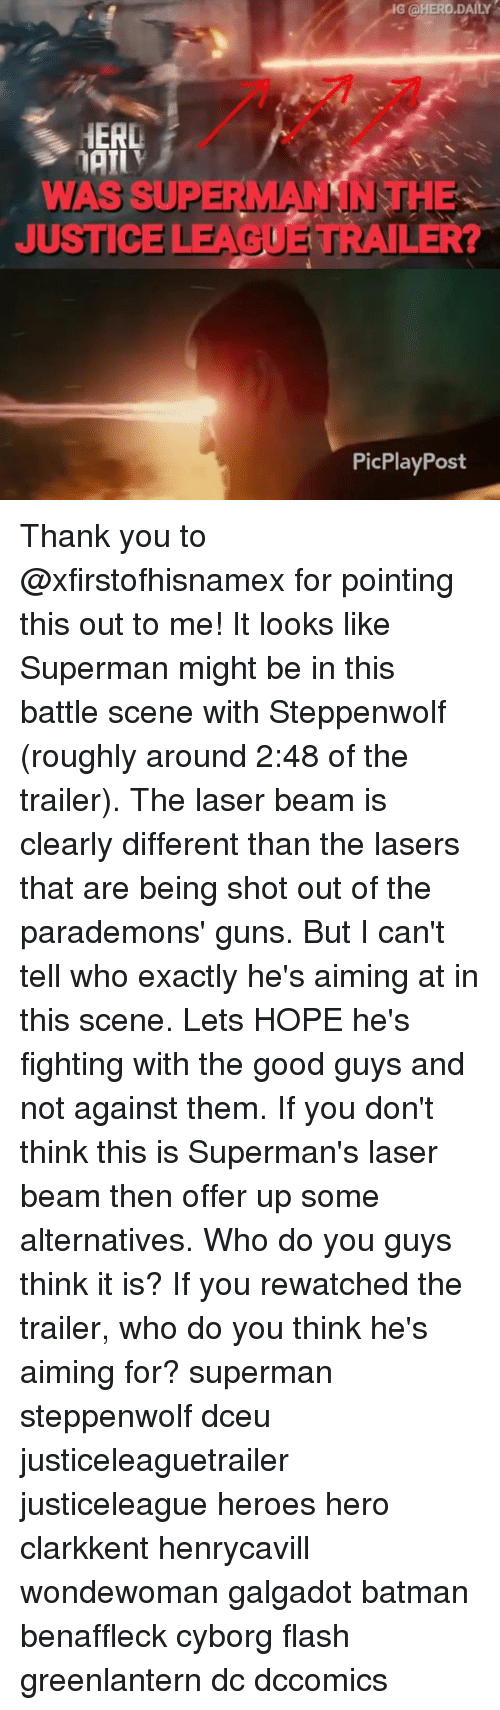 Beamly: G @HERO.DAILY  HERL  WAS SUPERMANSNTHE  JUSTICE LEAGUE TRAILER?  PicPlayPost Thank you to @xfirstofhisnamex for pointing this out to me! It looks like Superman might be in this battle scene with Steppenwolf (roughly around 2:48 of the trailer). The laser beam is clearly different than the lasers that are being shot out of the parademons' guns. But I can't tell who exactly he's aiming at in this scene. Lets HOPE he's fighting with the good guys and not against them. If you don't think this is Superman's laser beam then offer up some alternatives. Who do you guys think it is? If you rewatched the trailer, who do you think he's aiming for? superman steppenwolf dceu justiceleaguetrailer justiceleague heroes hero clarkkent henrycavill wondewoman galgadot batman benaffleck cyborg flash greenlantern dc dccomics